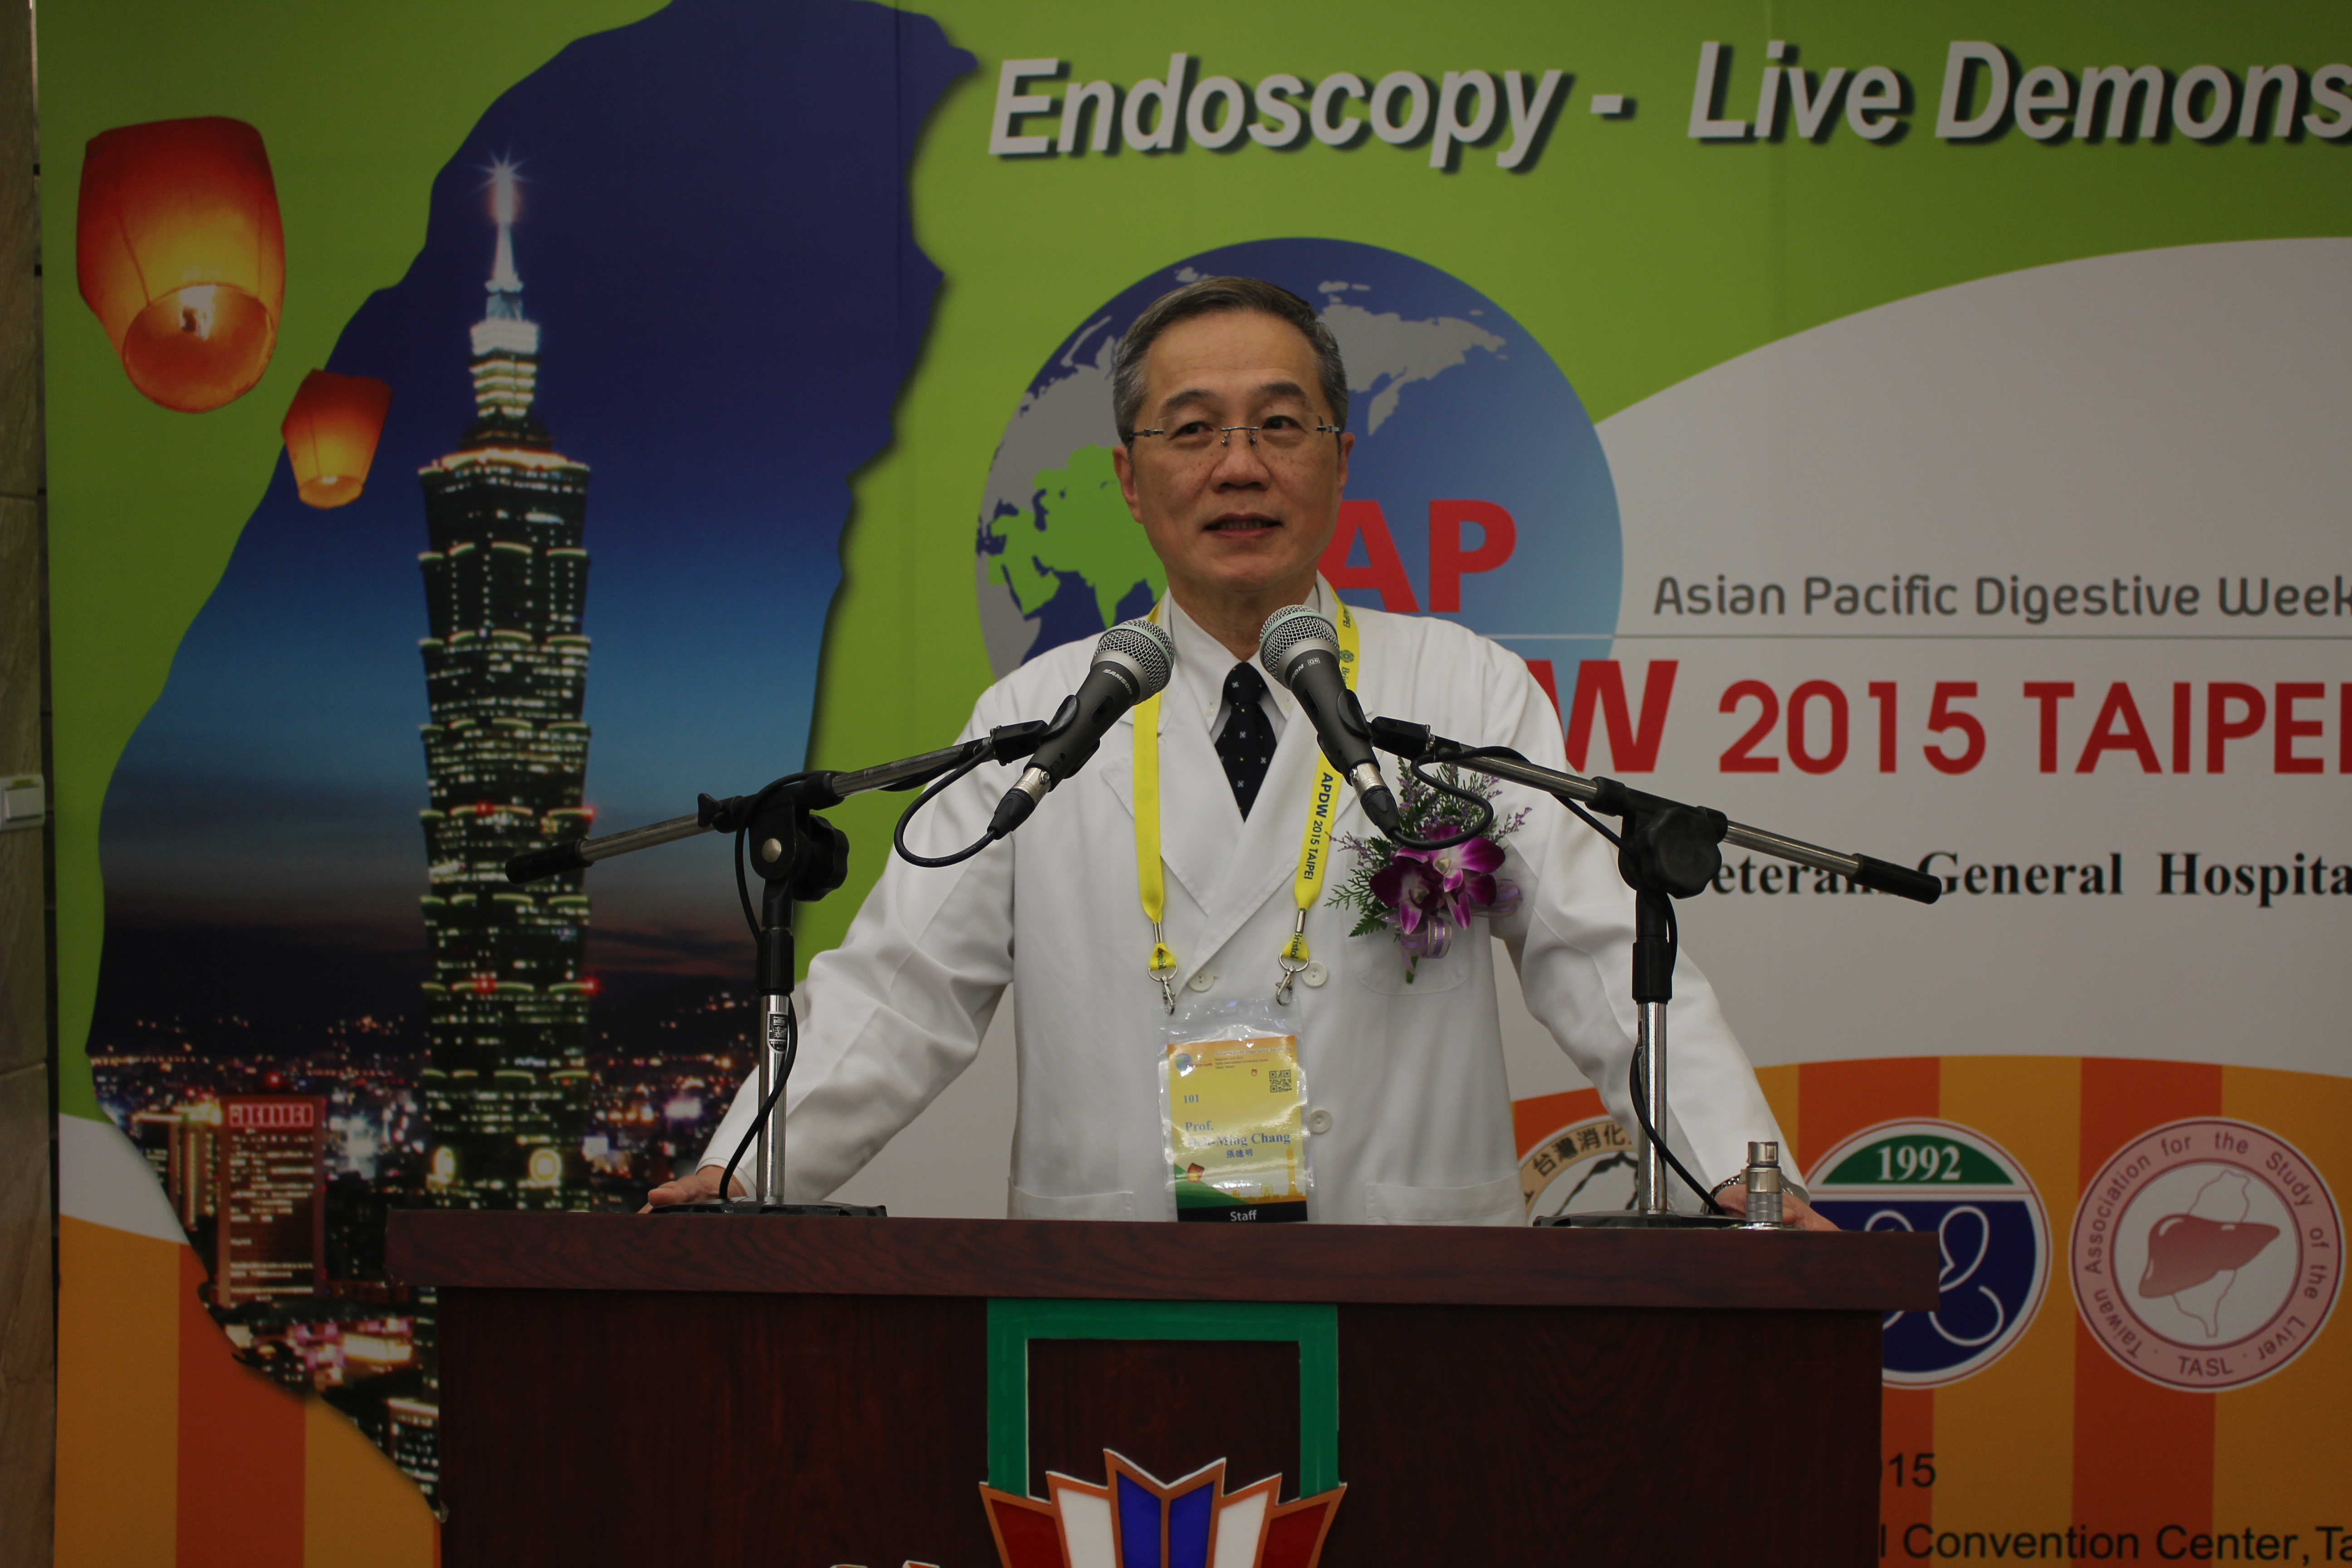 The superintendent of TVGH made the welcome speech to all the member of Asian Pacific Digestive Society of Gastroenterology.